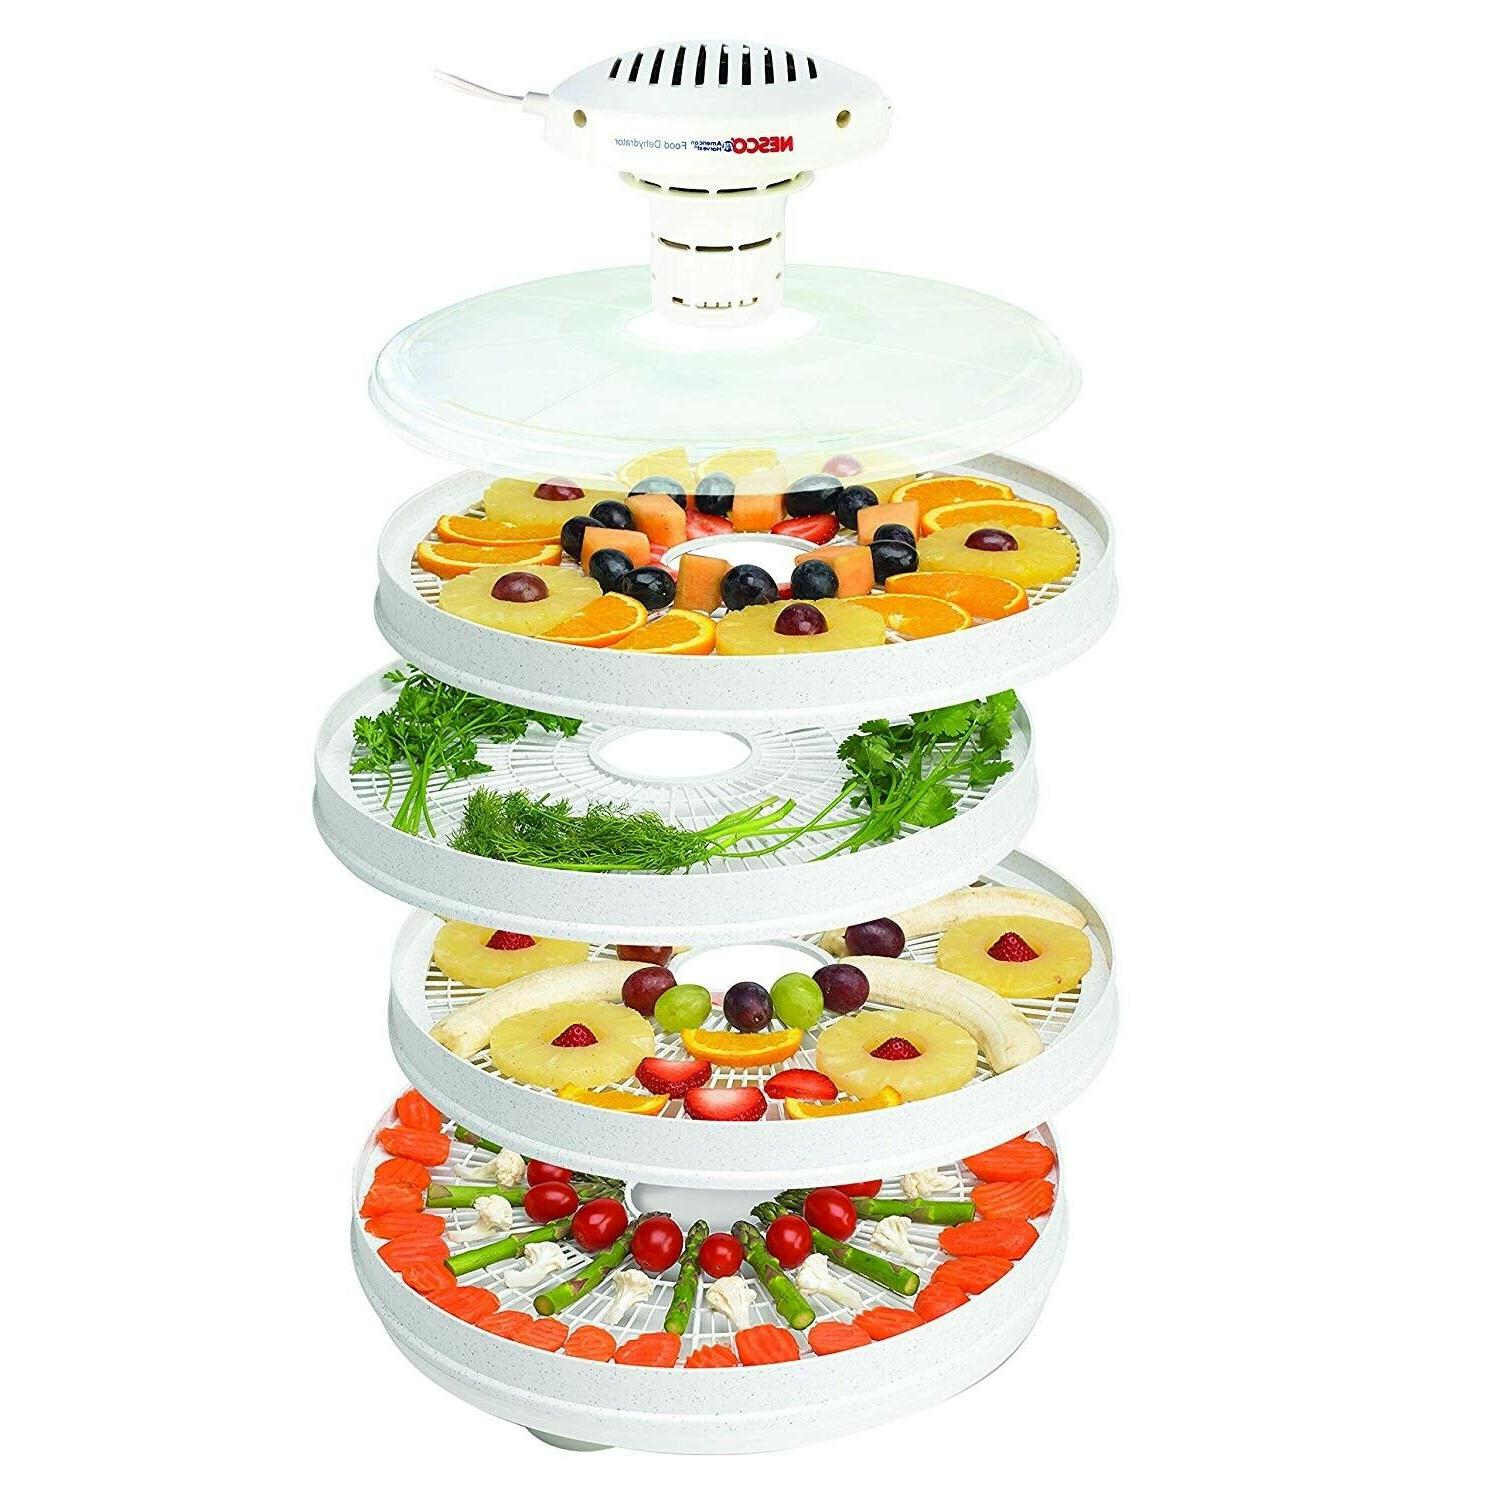 NEW - Food Dehydrator, Speckled/Marbled, watts